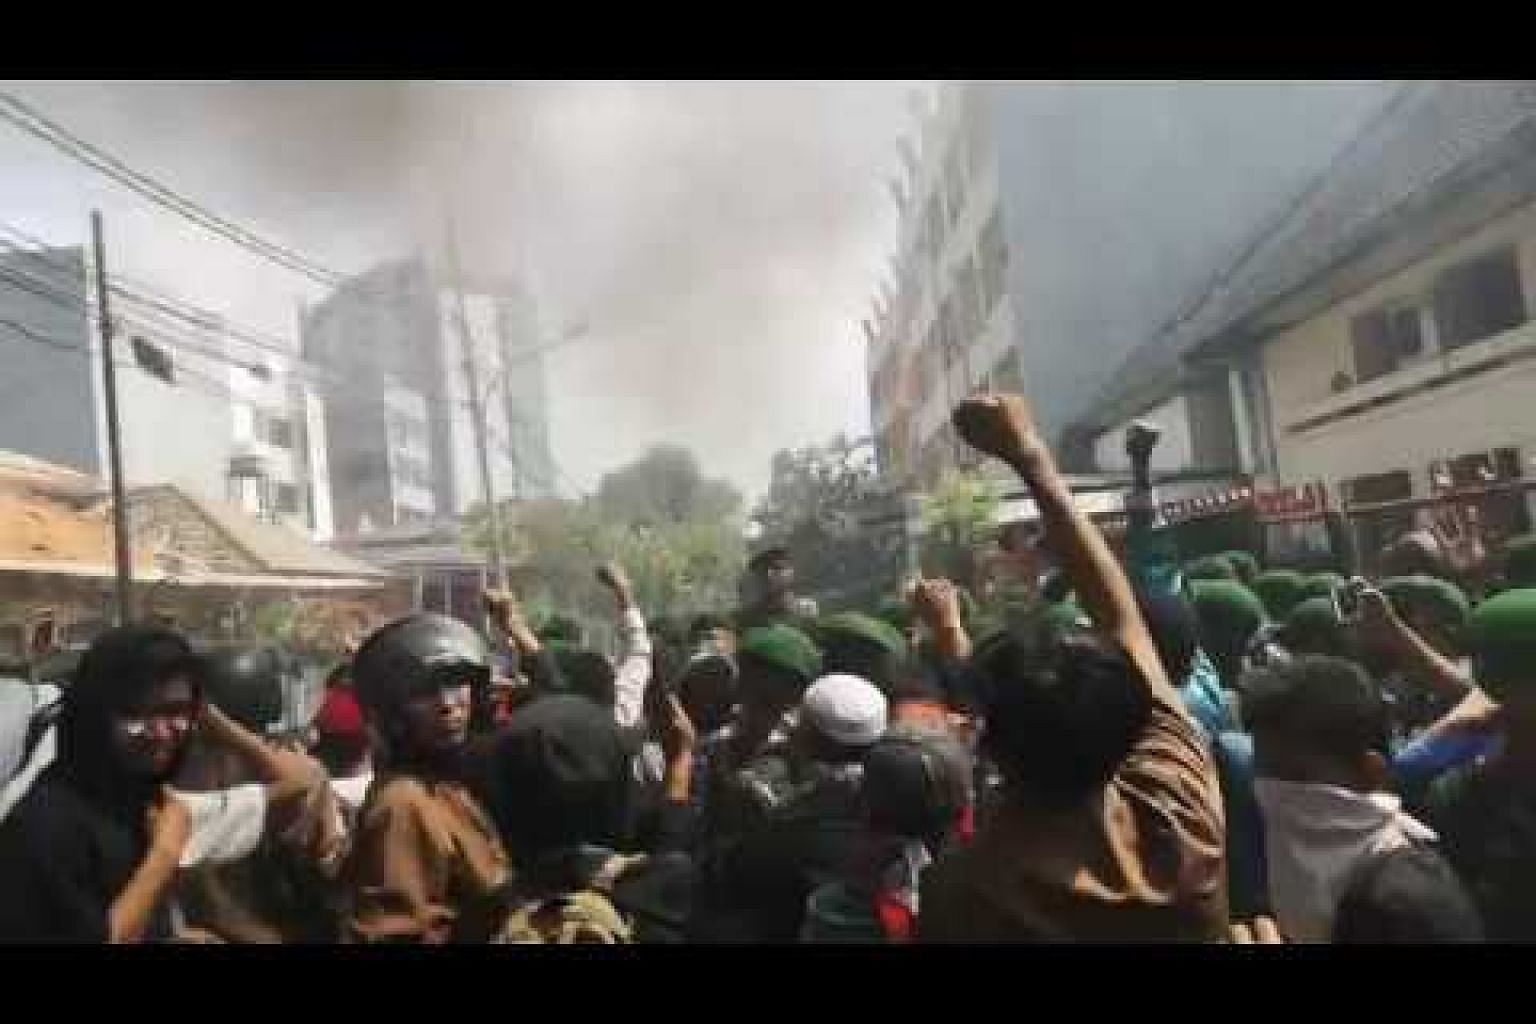 Indonesia army reserve negotiating with crowd leaders during protests